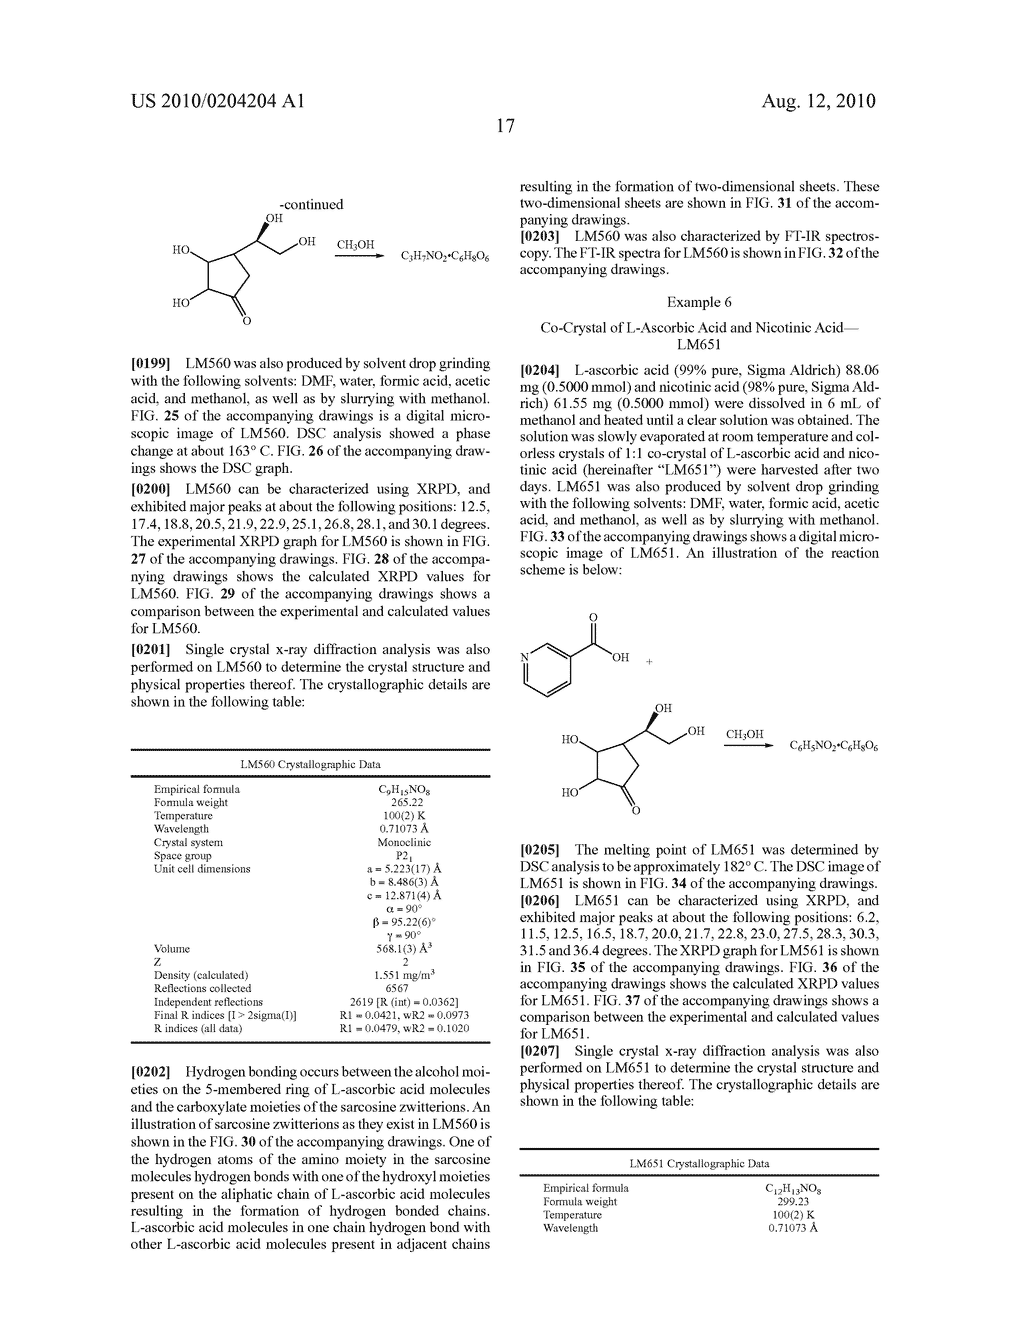 NUTRACEUTICAL CO-CRYSTAL COMPOSITIONS - diagram, schematic, and image 82